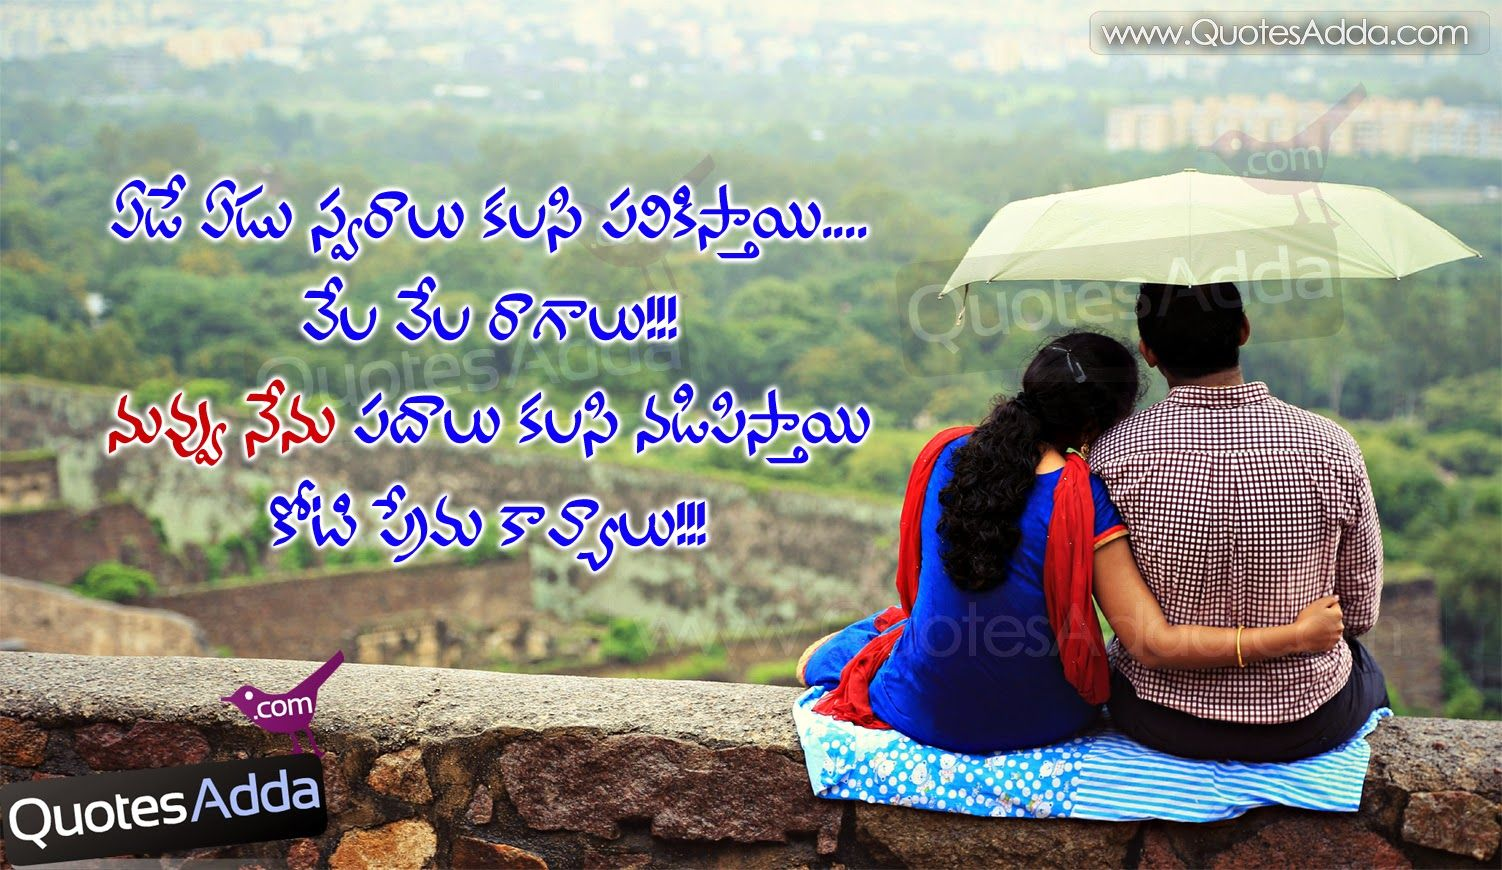 Telugu Love Quotes Amusing Funny Love Proposal Quotes Best Telugu Beautiful Love Quotations